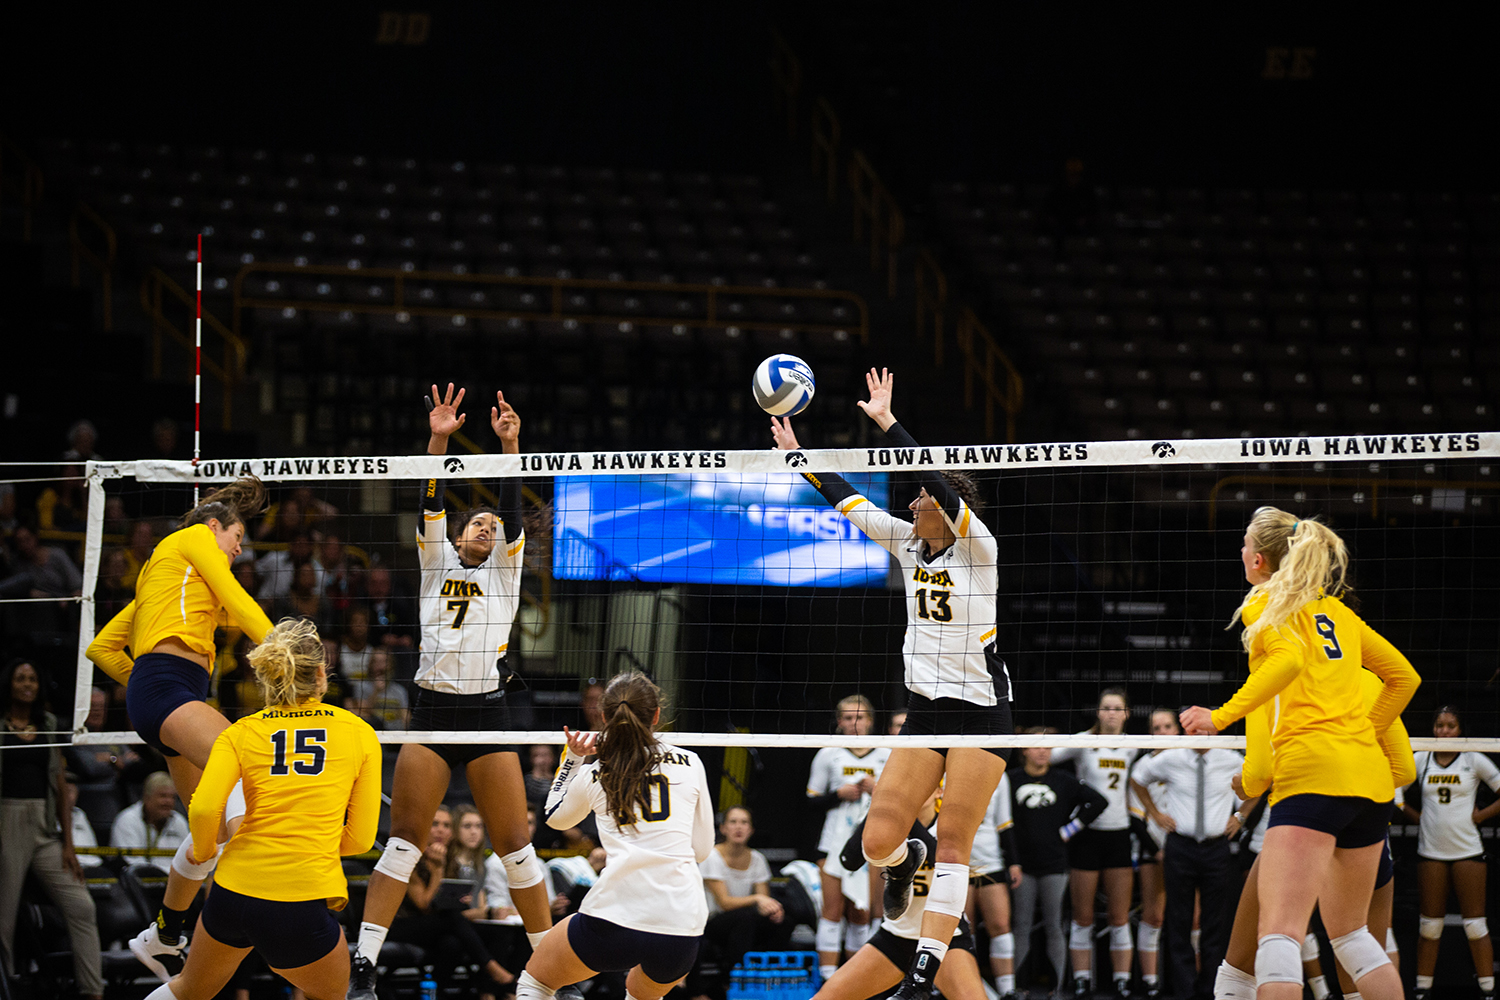 Sarah Wing and Brie Orr jump to block the ball during Iowa's match against Michigan at Carver-Hawkeye Arena on Sept. 23, 2018. The Hawkeyes were defeated 3-1.